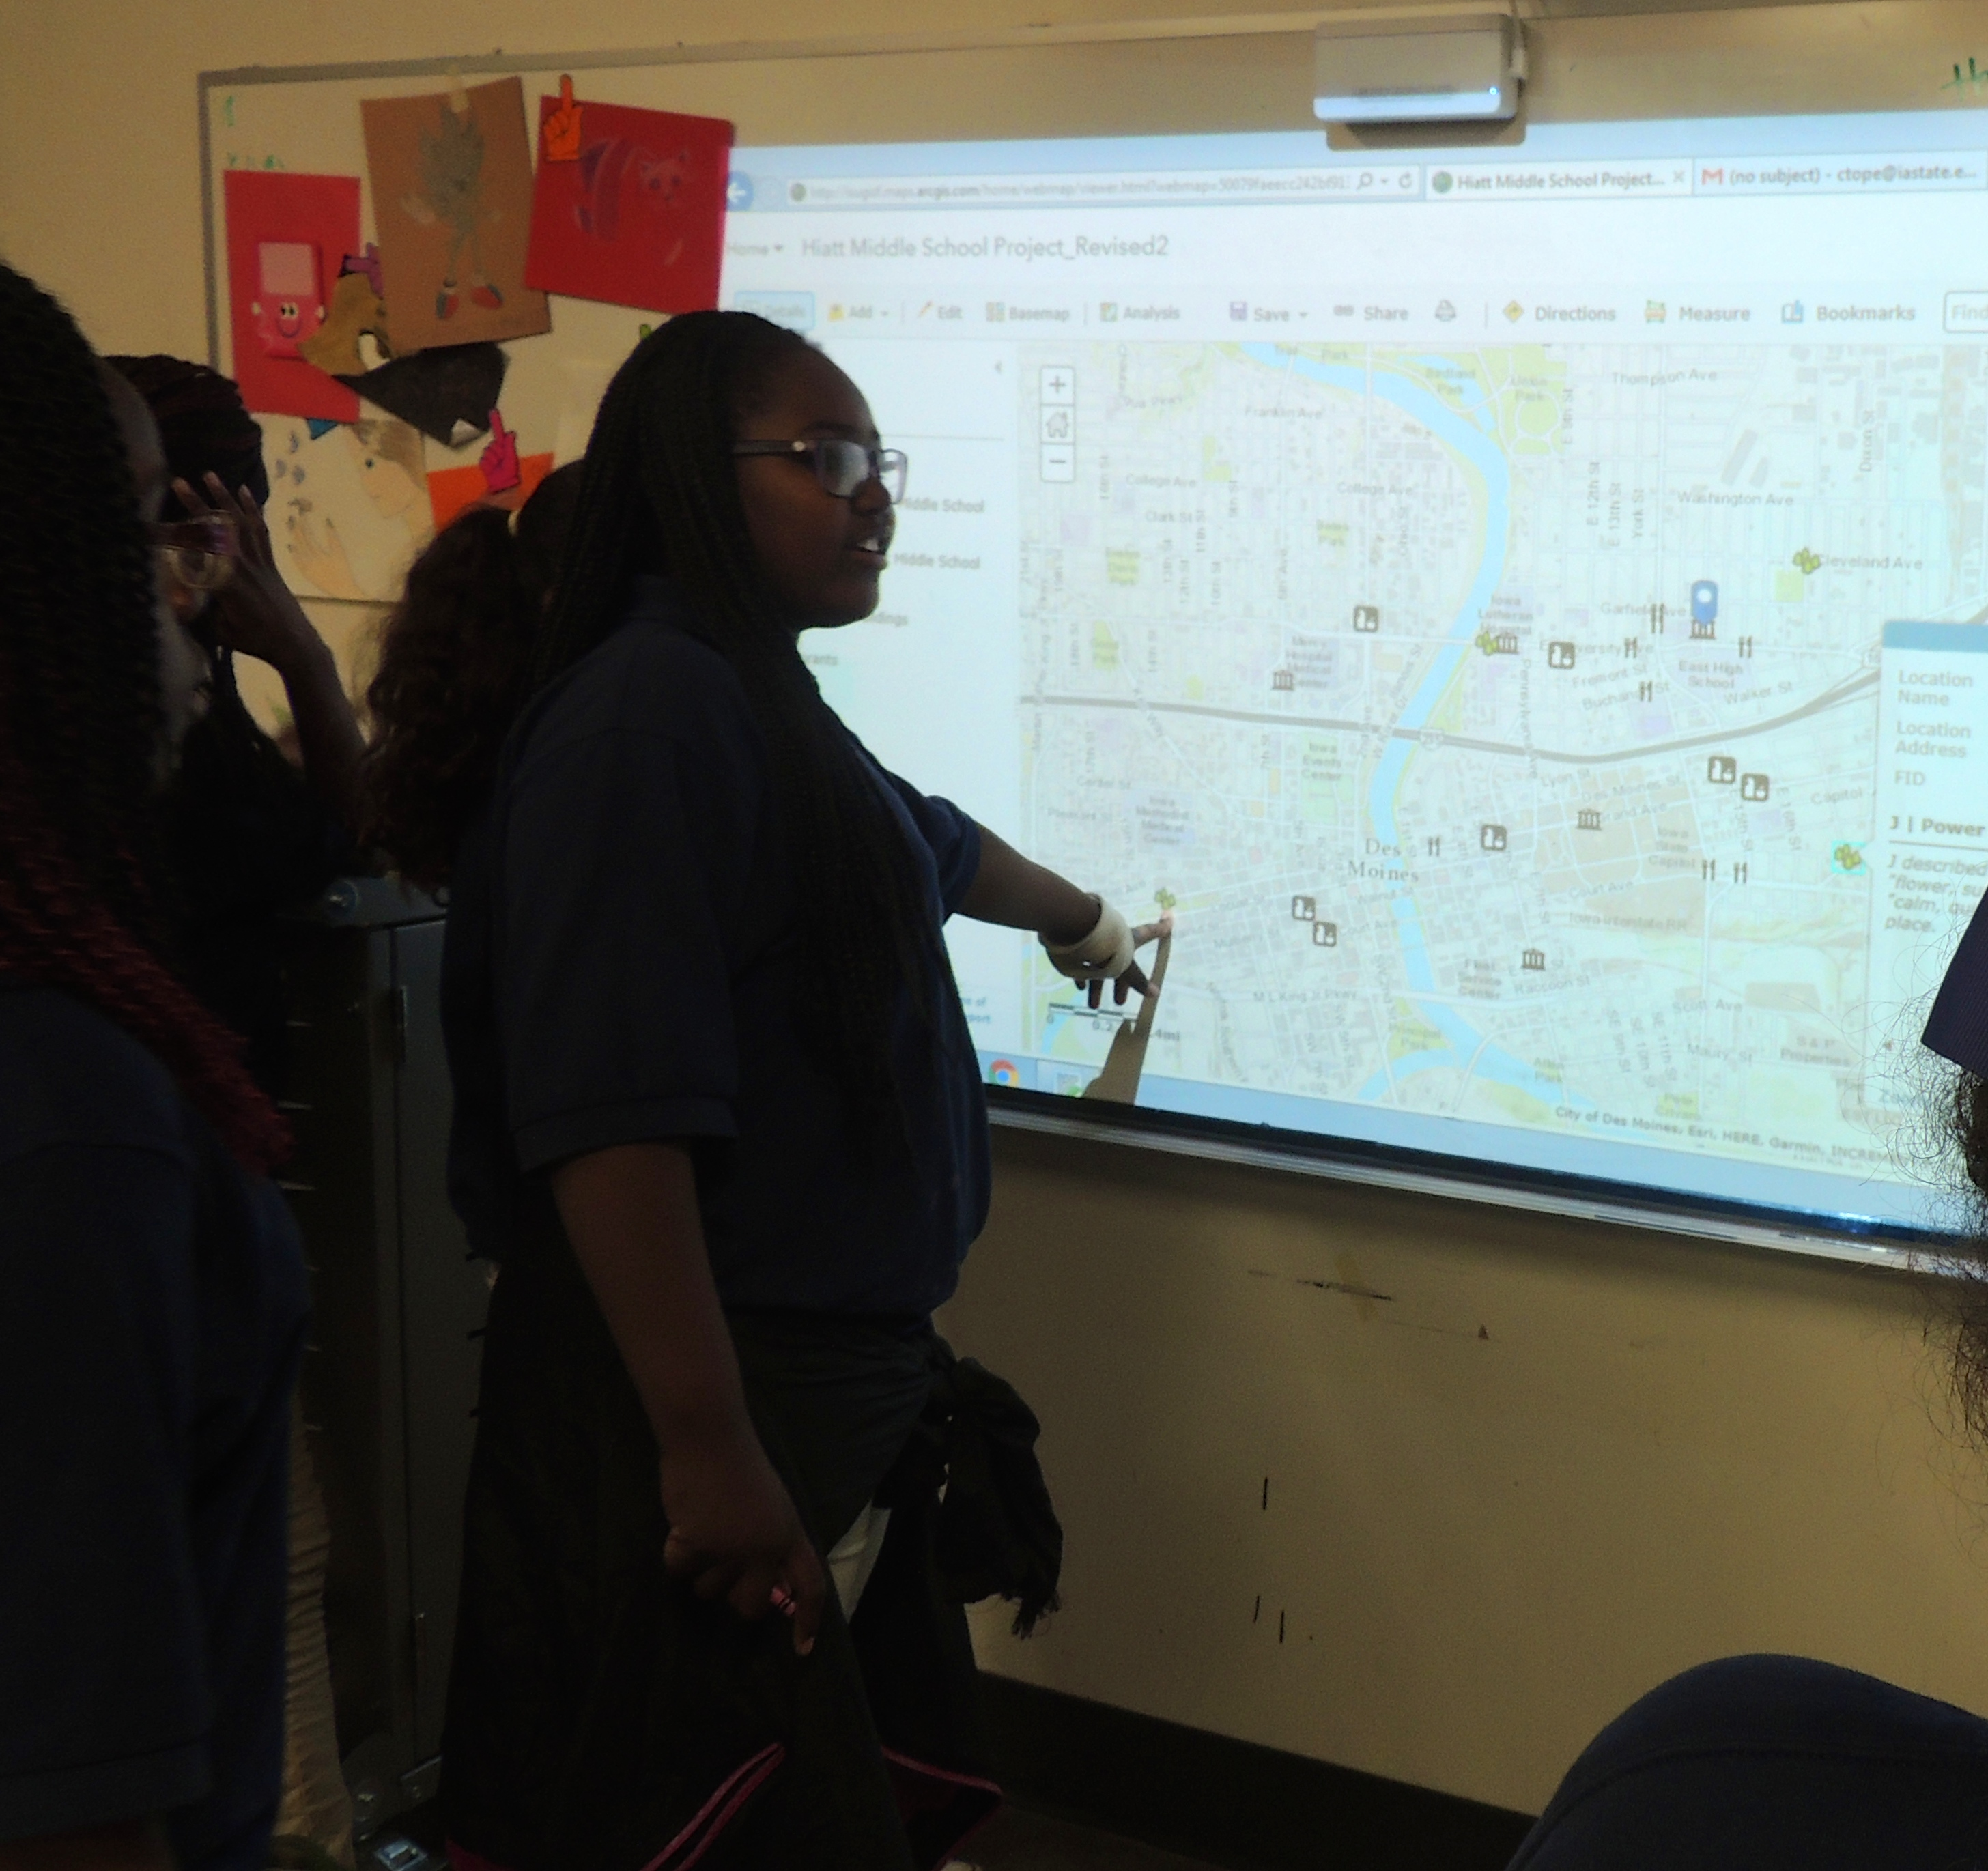 On April 20th, Community Growers youth were working on their GIS map today, analyzing what their map suggests about their garden within food and recreation systems.